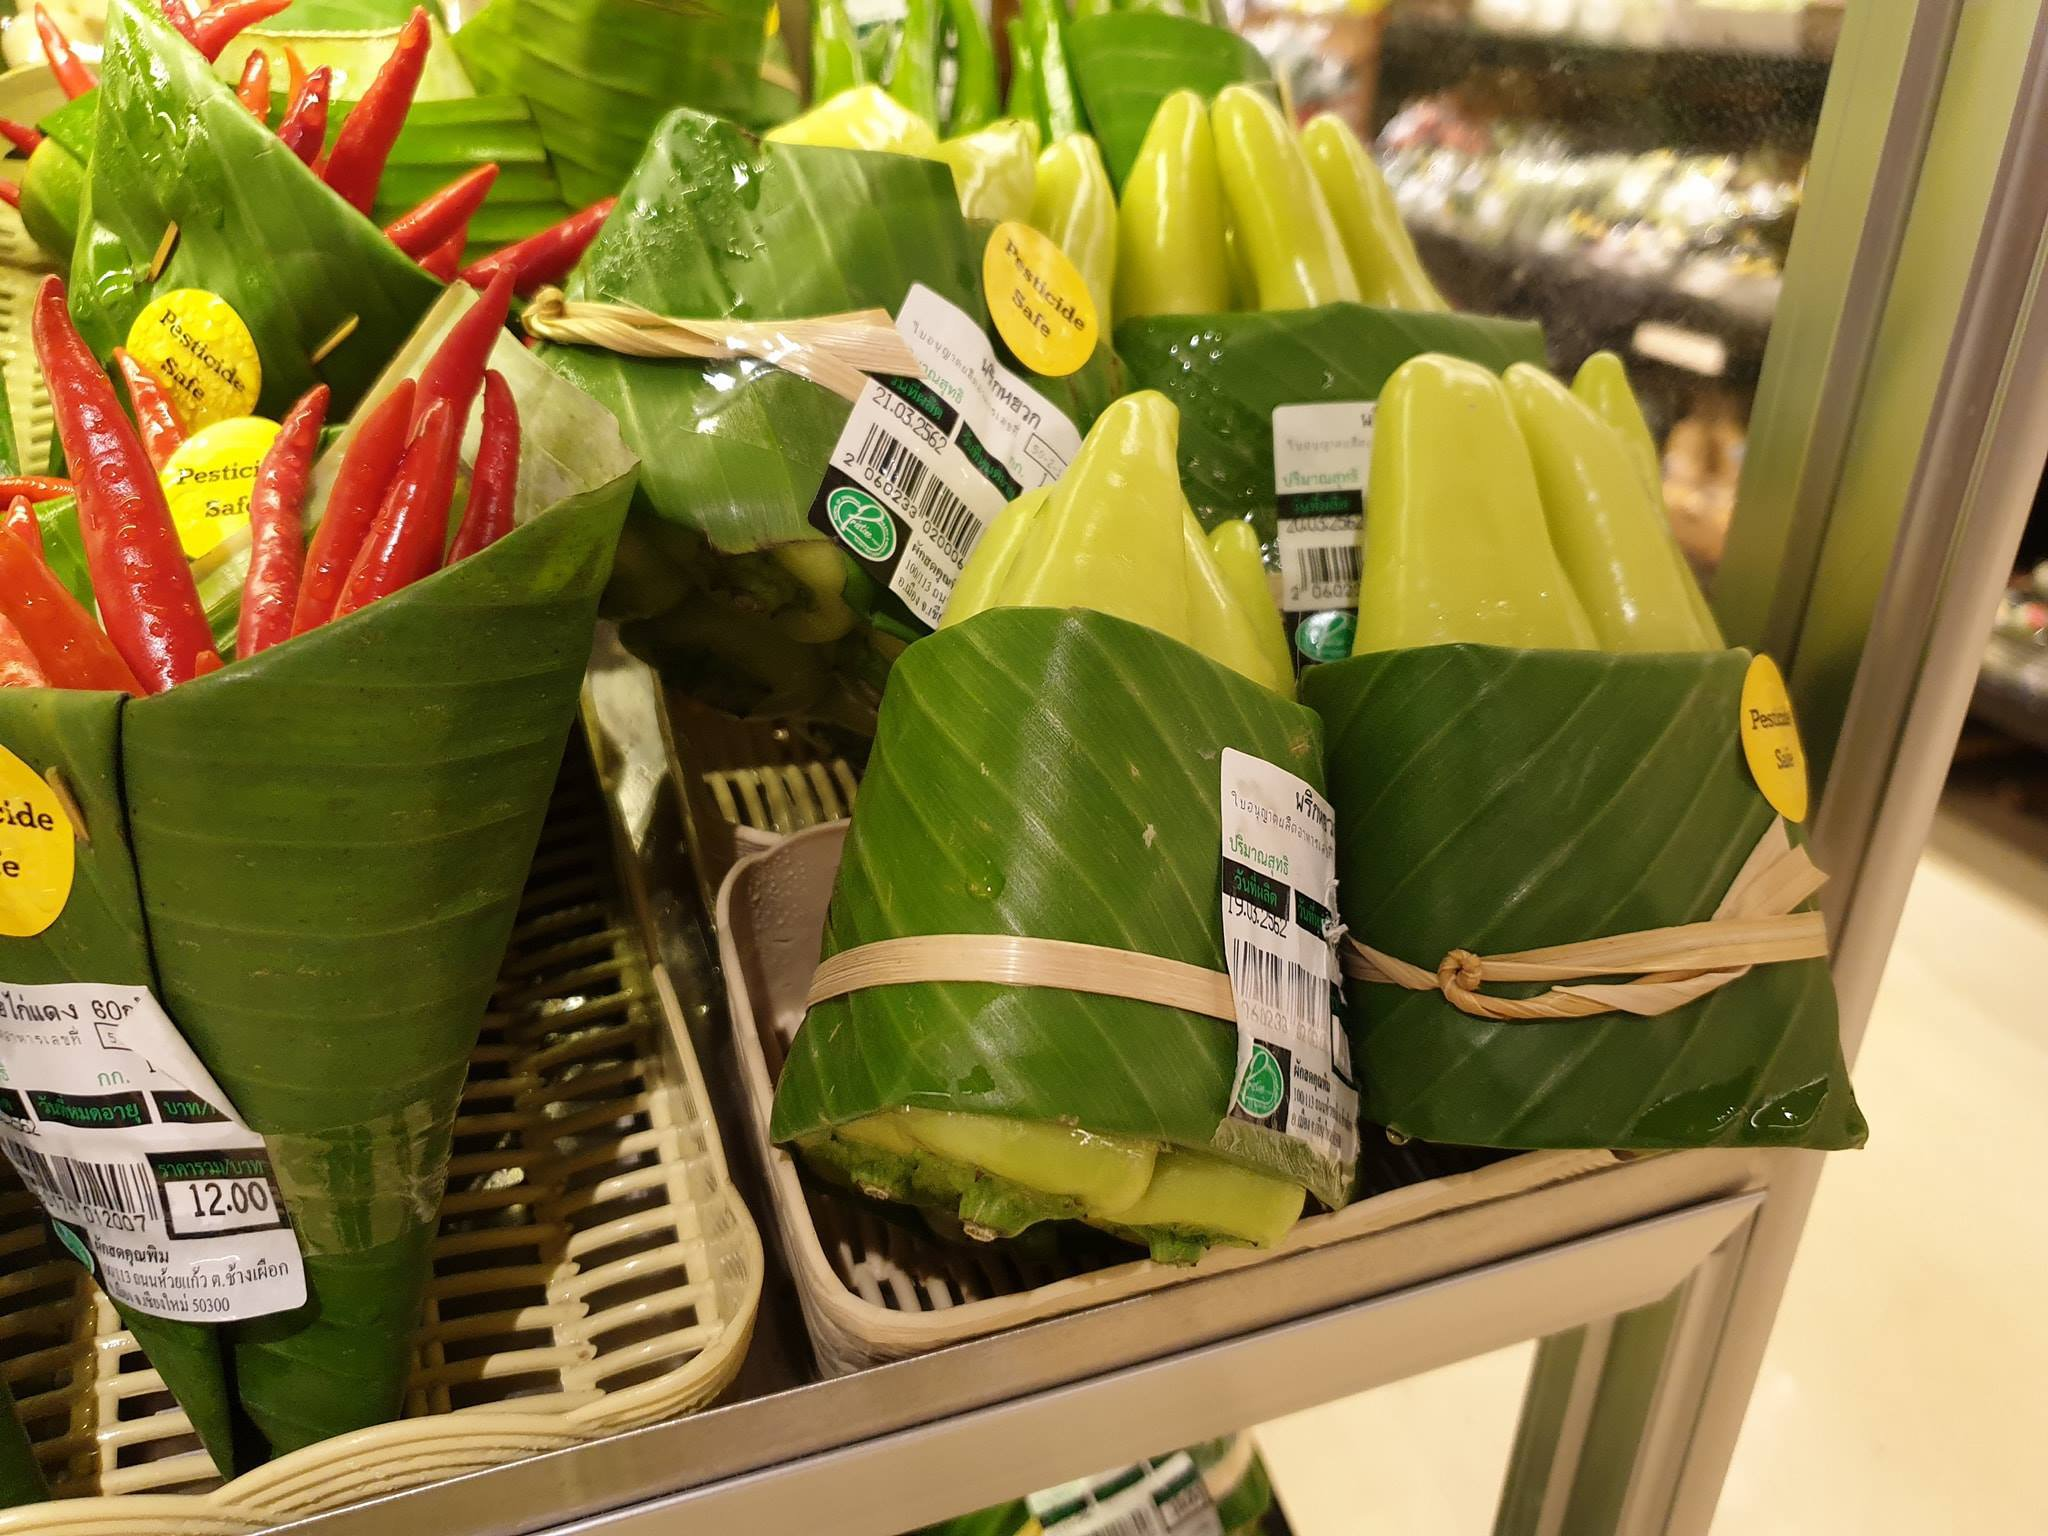 Supermarket in Thailand uses banana leaves as packaging instead of plastic